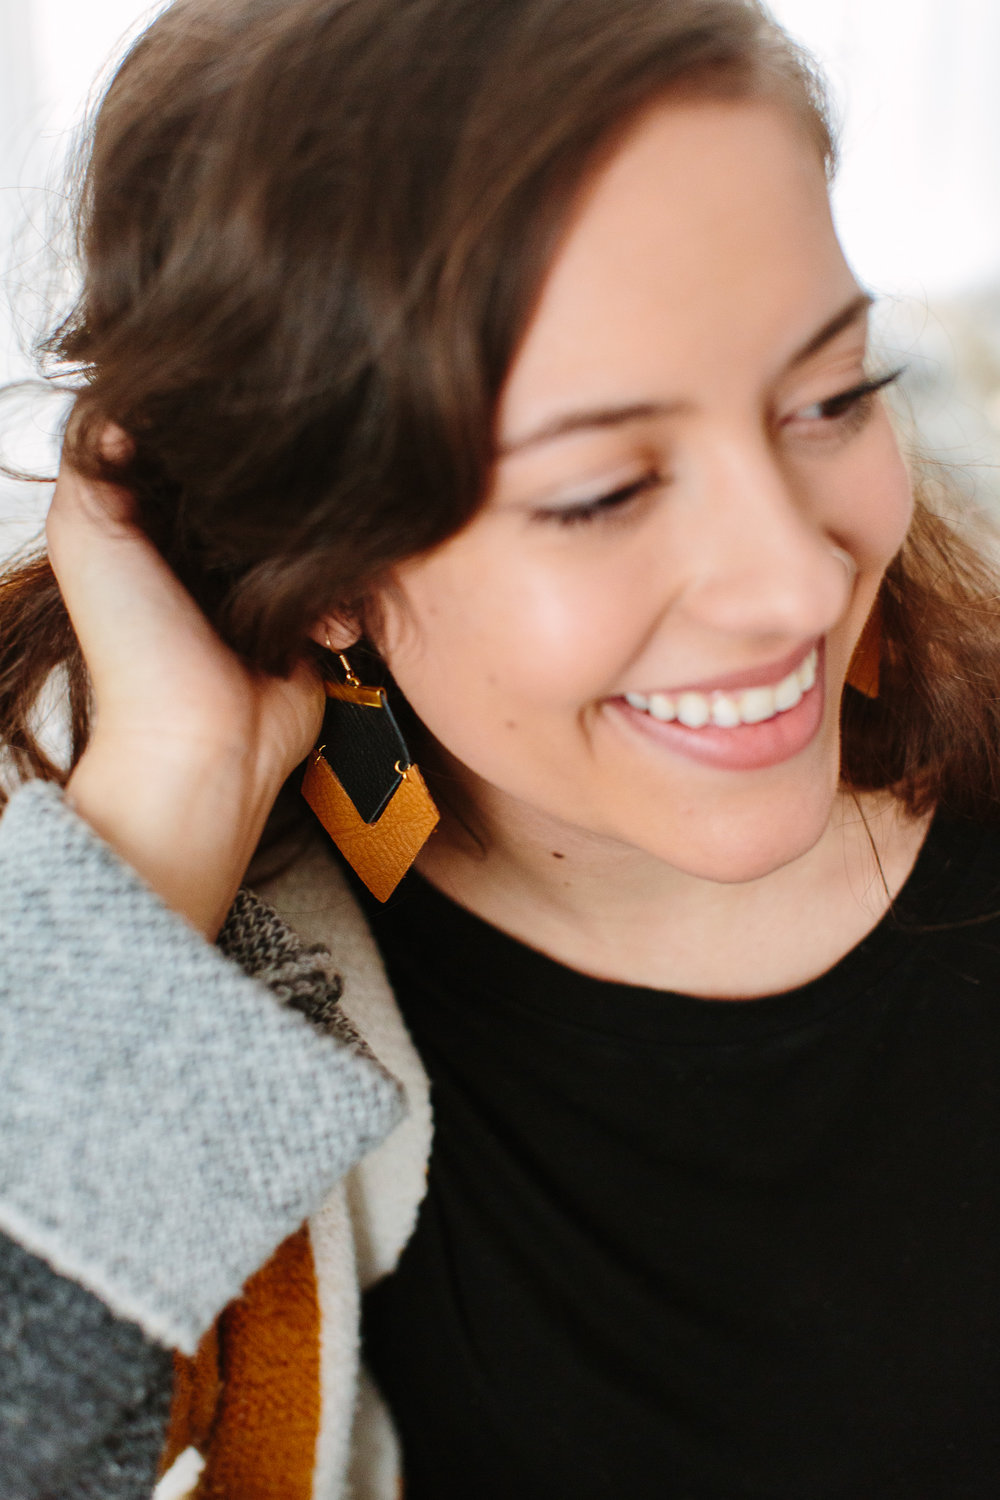 Knoxville Branding Photography by Suzy Collins // Handmade Leather Jewelry // Ivy Lane Jewelry